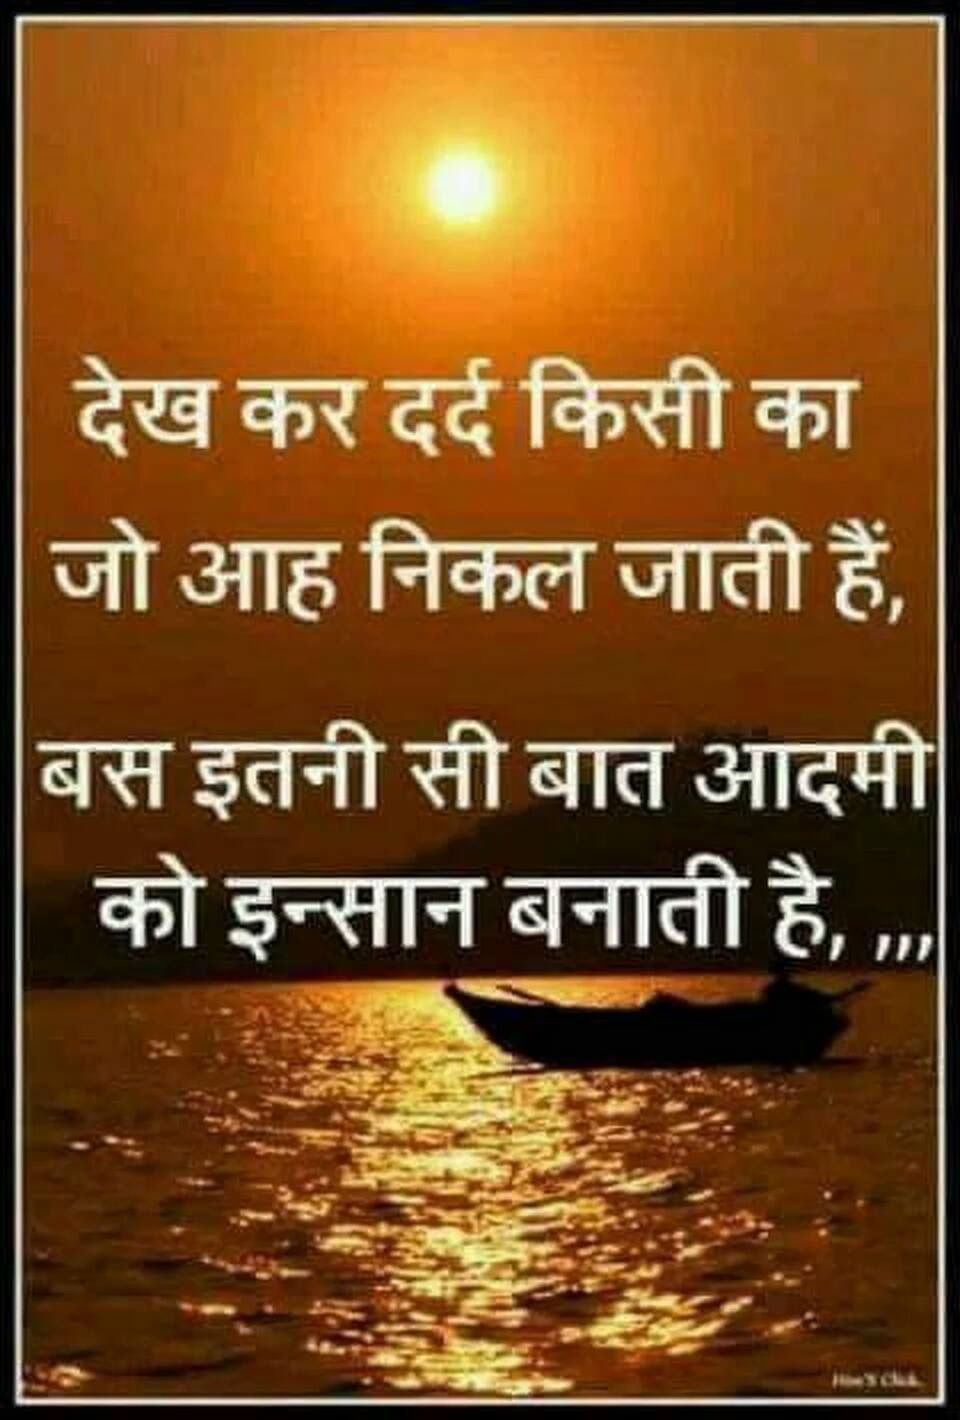 Pin By Chandresh Jobanputra On Bb Hindi Quotes Hindi Qoutes Quotes